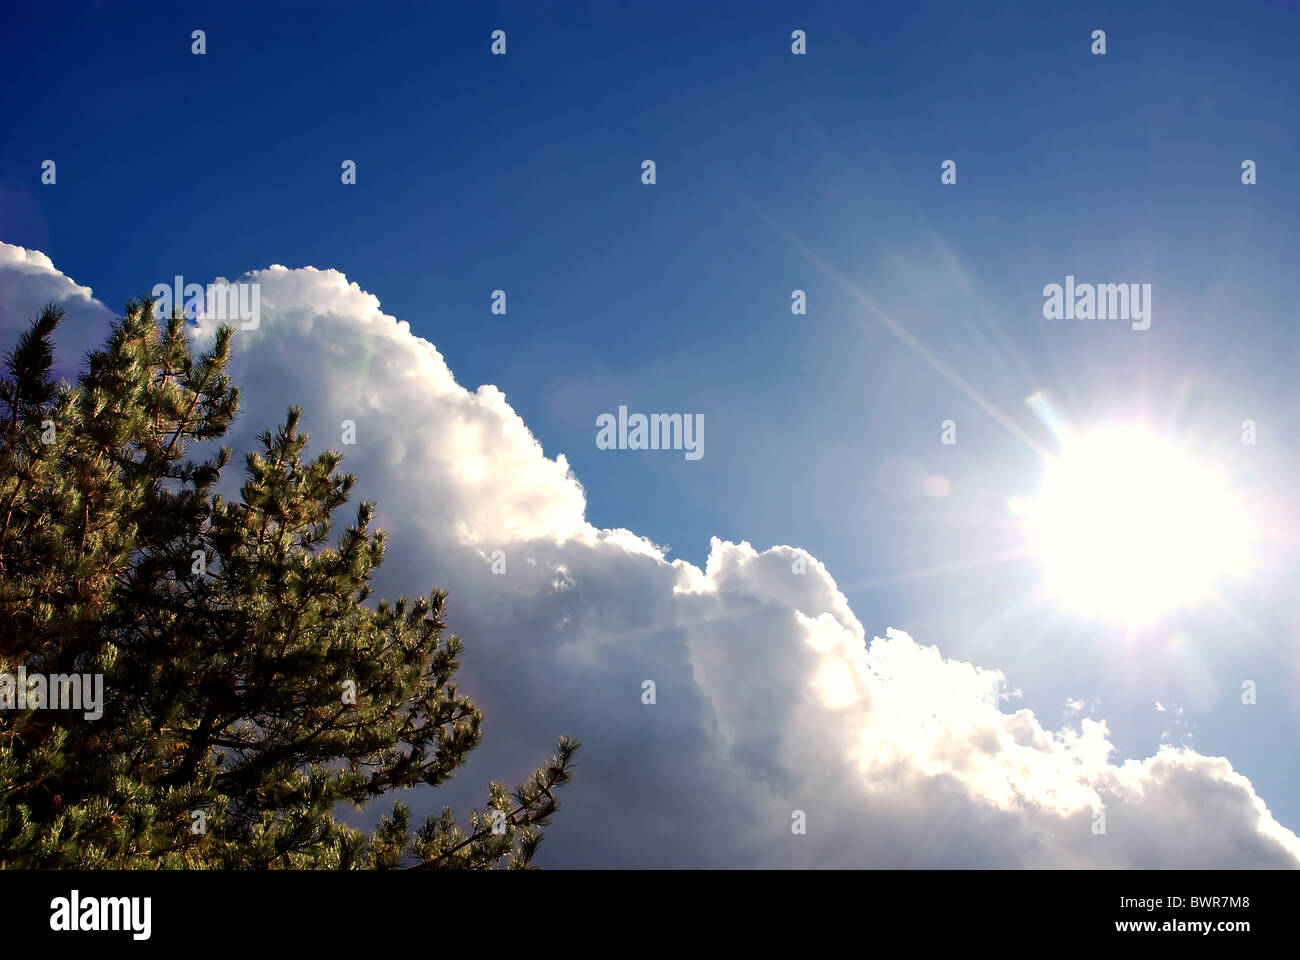 Pine tree, fluffy clouds and the sun with copy space Stock Photo